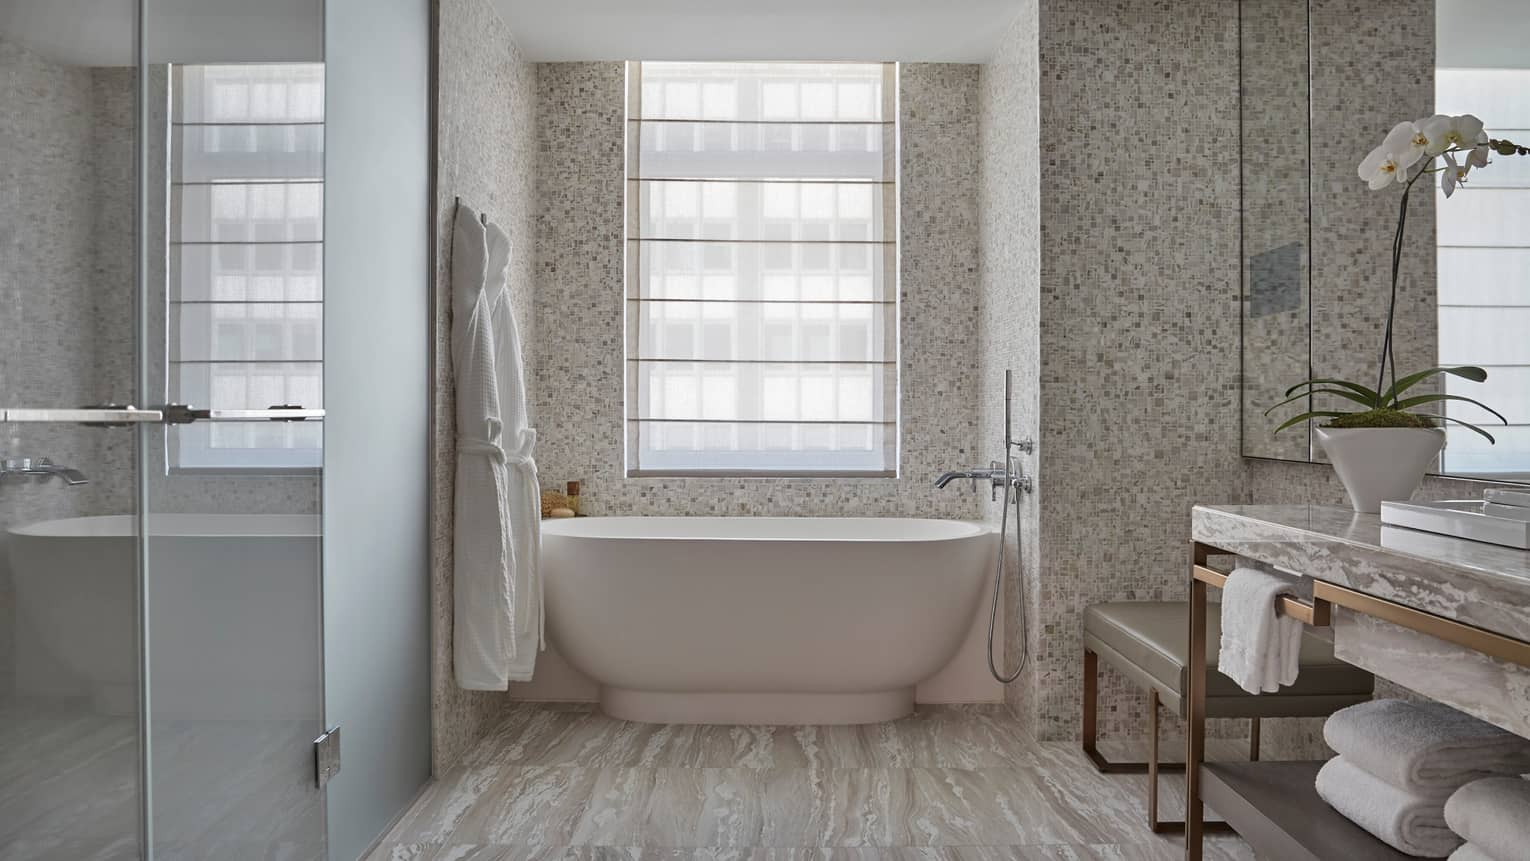 Corner Room bathroom with glass walk-in shower, white freestanding tub, vanity, white orchid